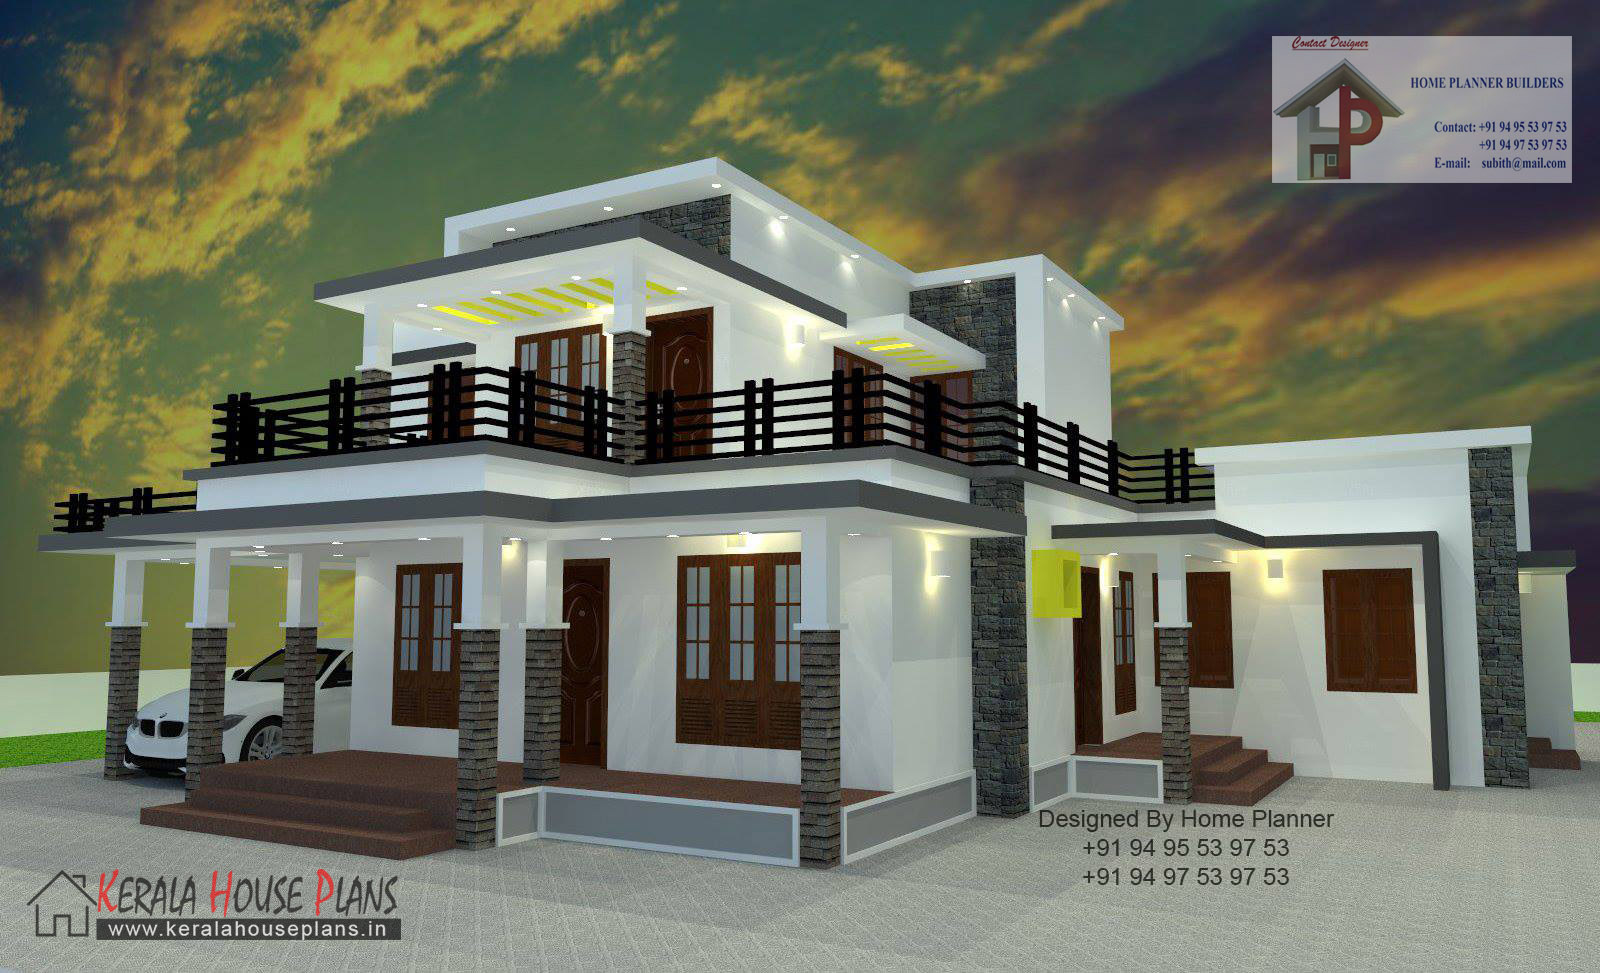 2000 sqft box type house kerala house plans designs House plans and designs